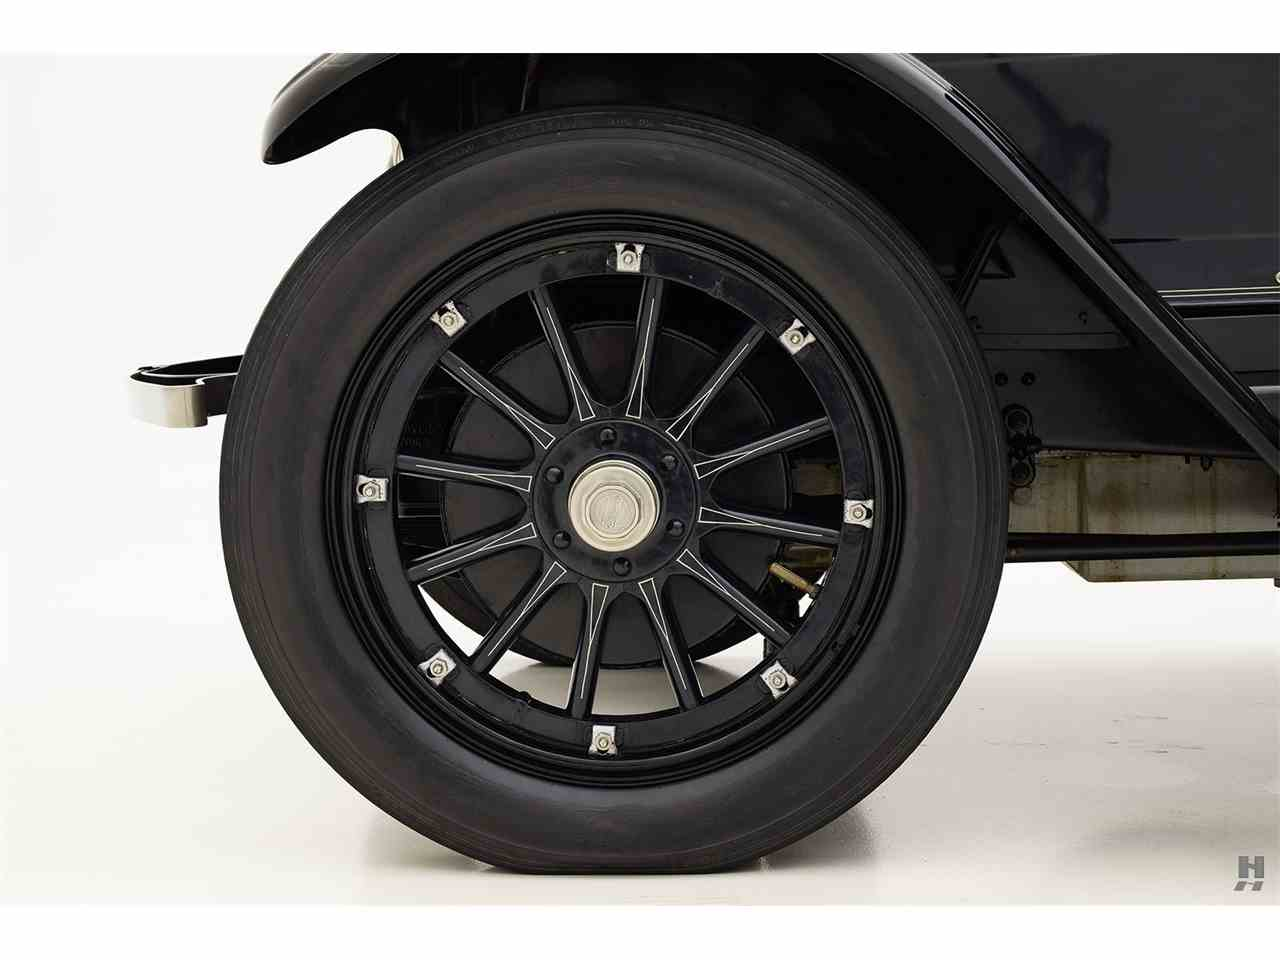 Large Picture of 1924 Model 48 - $119,500.00 Offered by Hyman Ltd. Classic Cars - LDV9